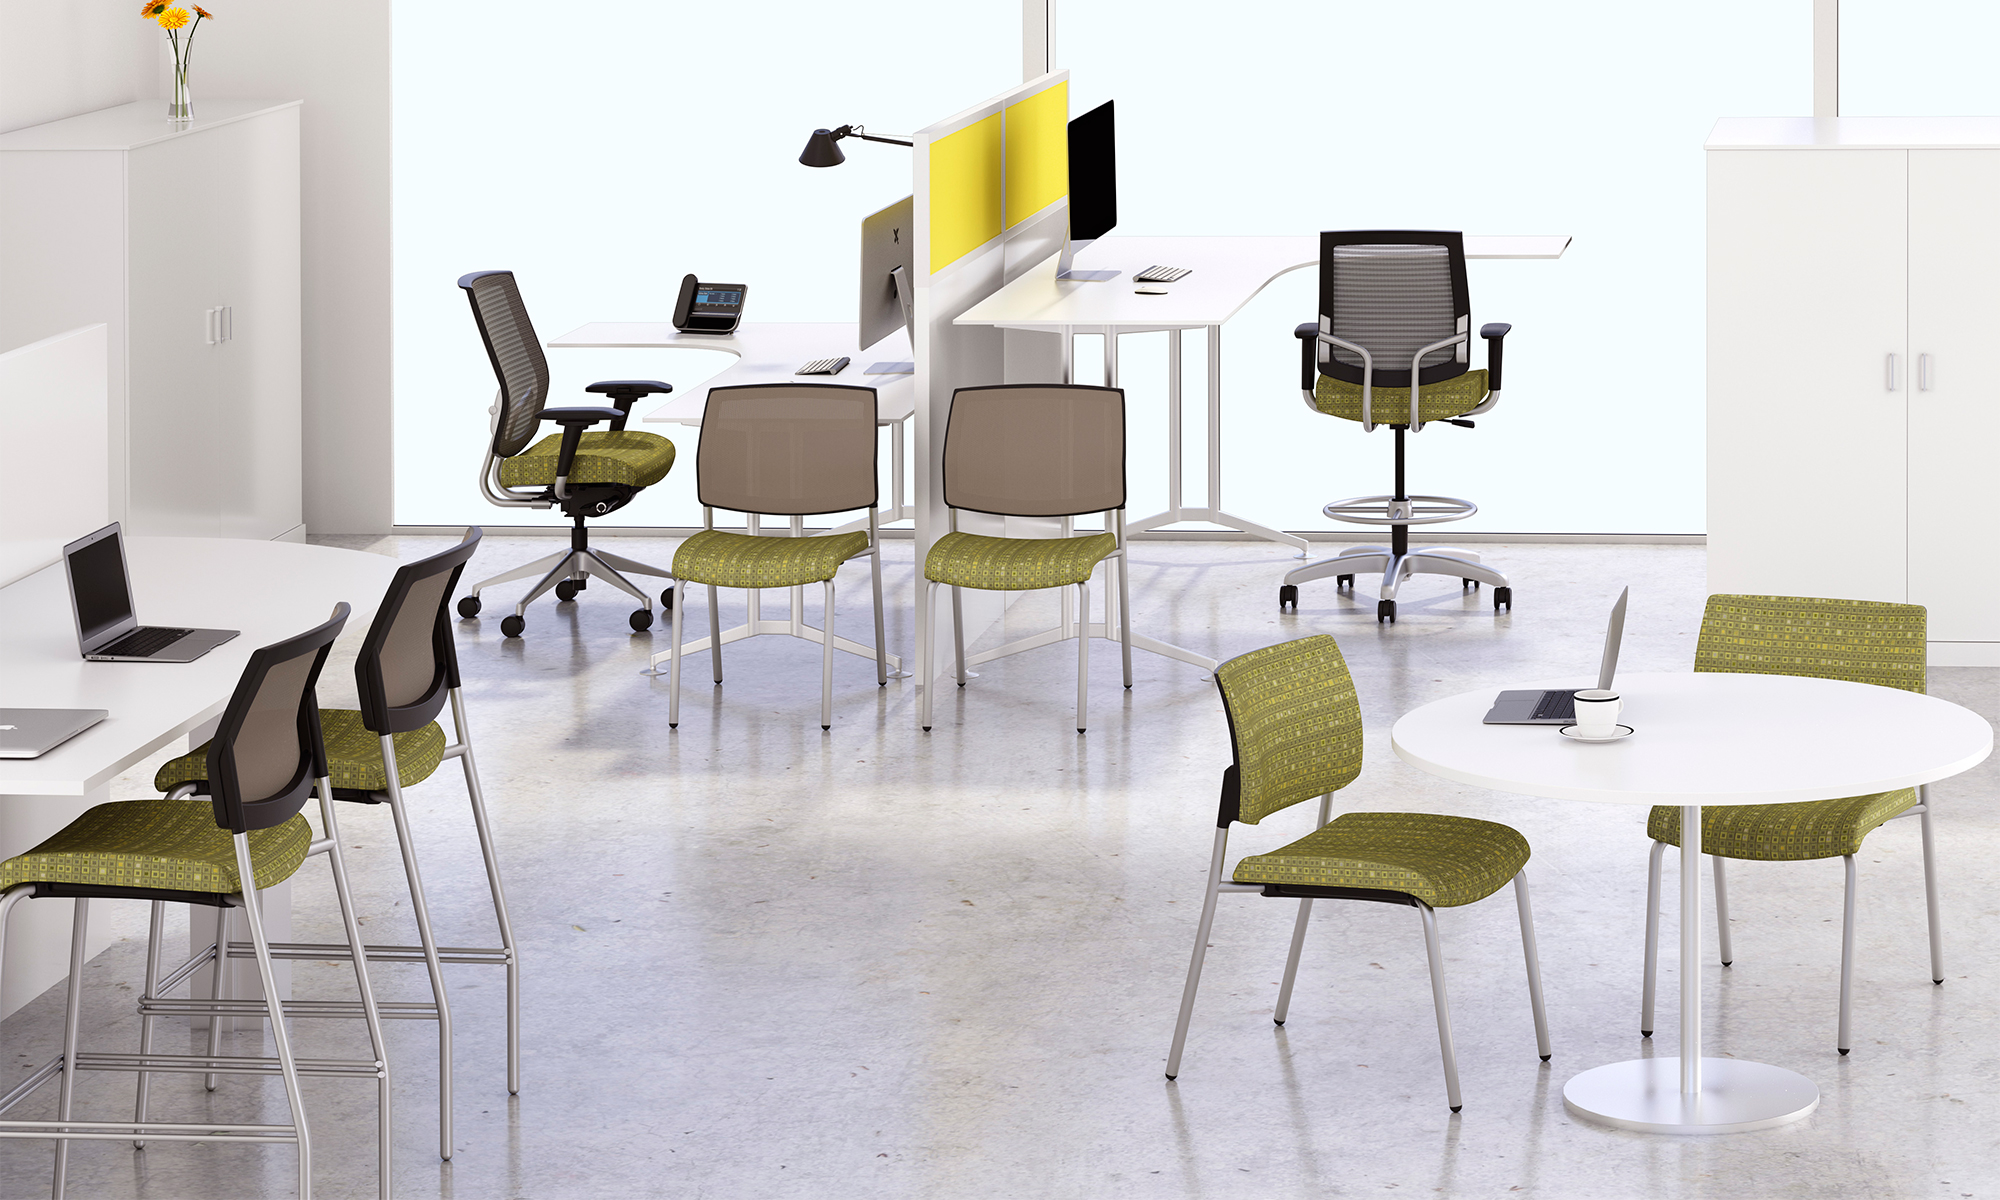 focus_collection_collaboration_space_environment.jpg